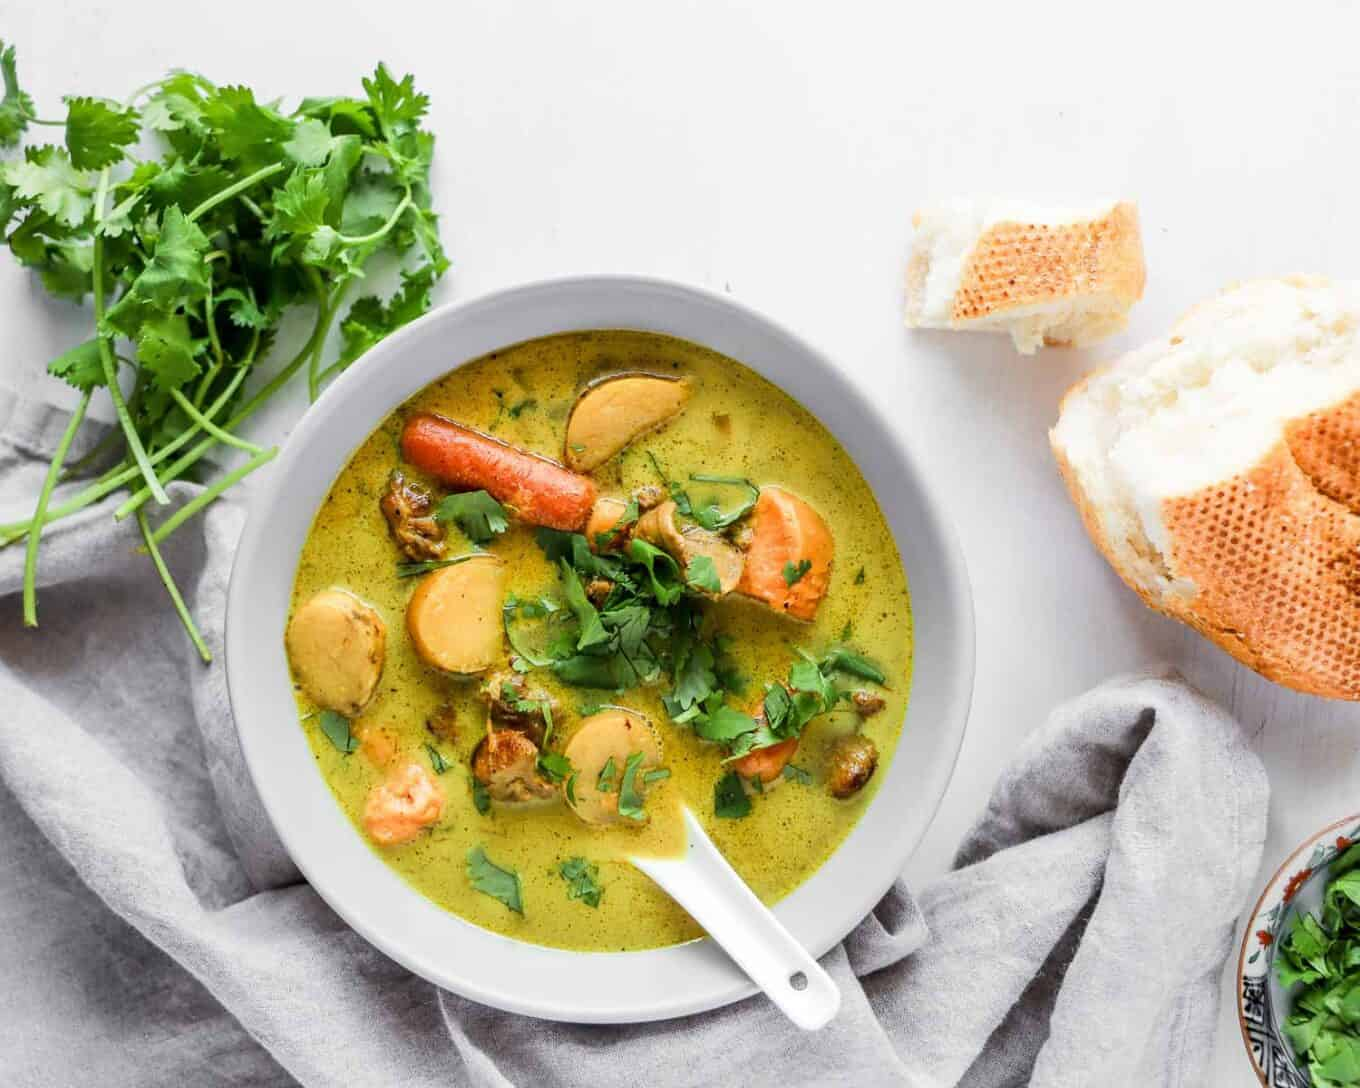 vietnamese chicken curry recipe, Ca Ri Ga, in a bowl with soup spoon and bread on the side